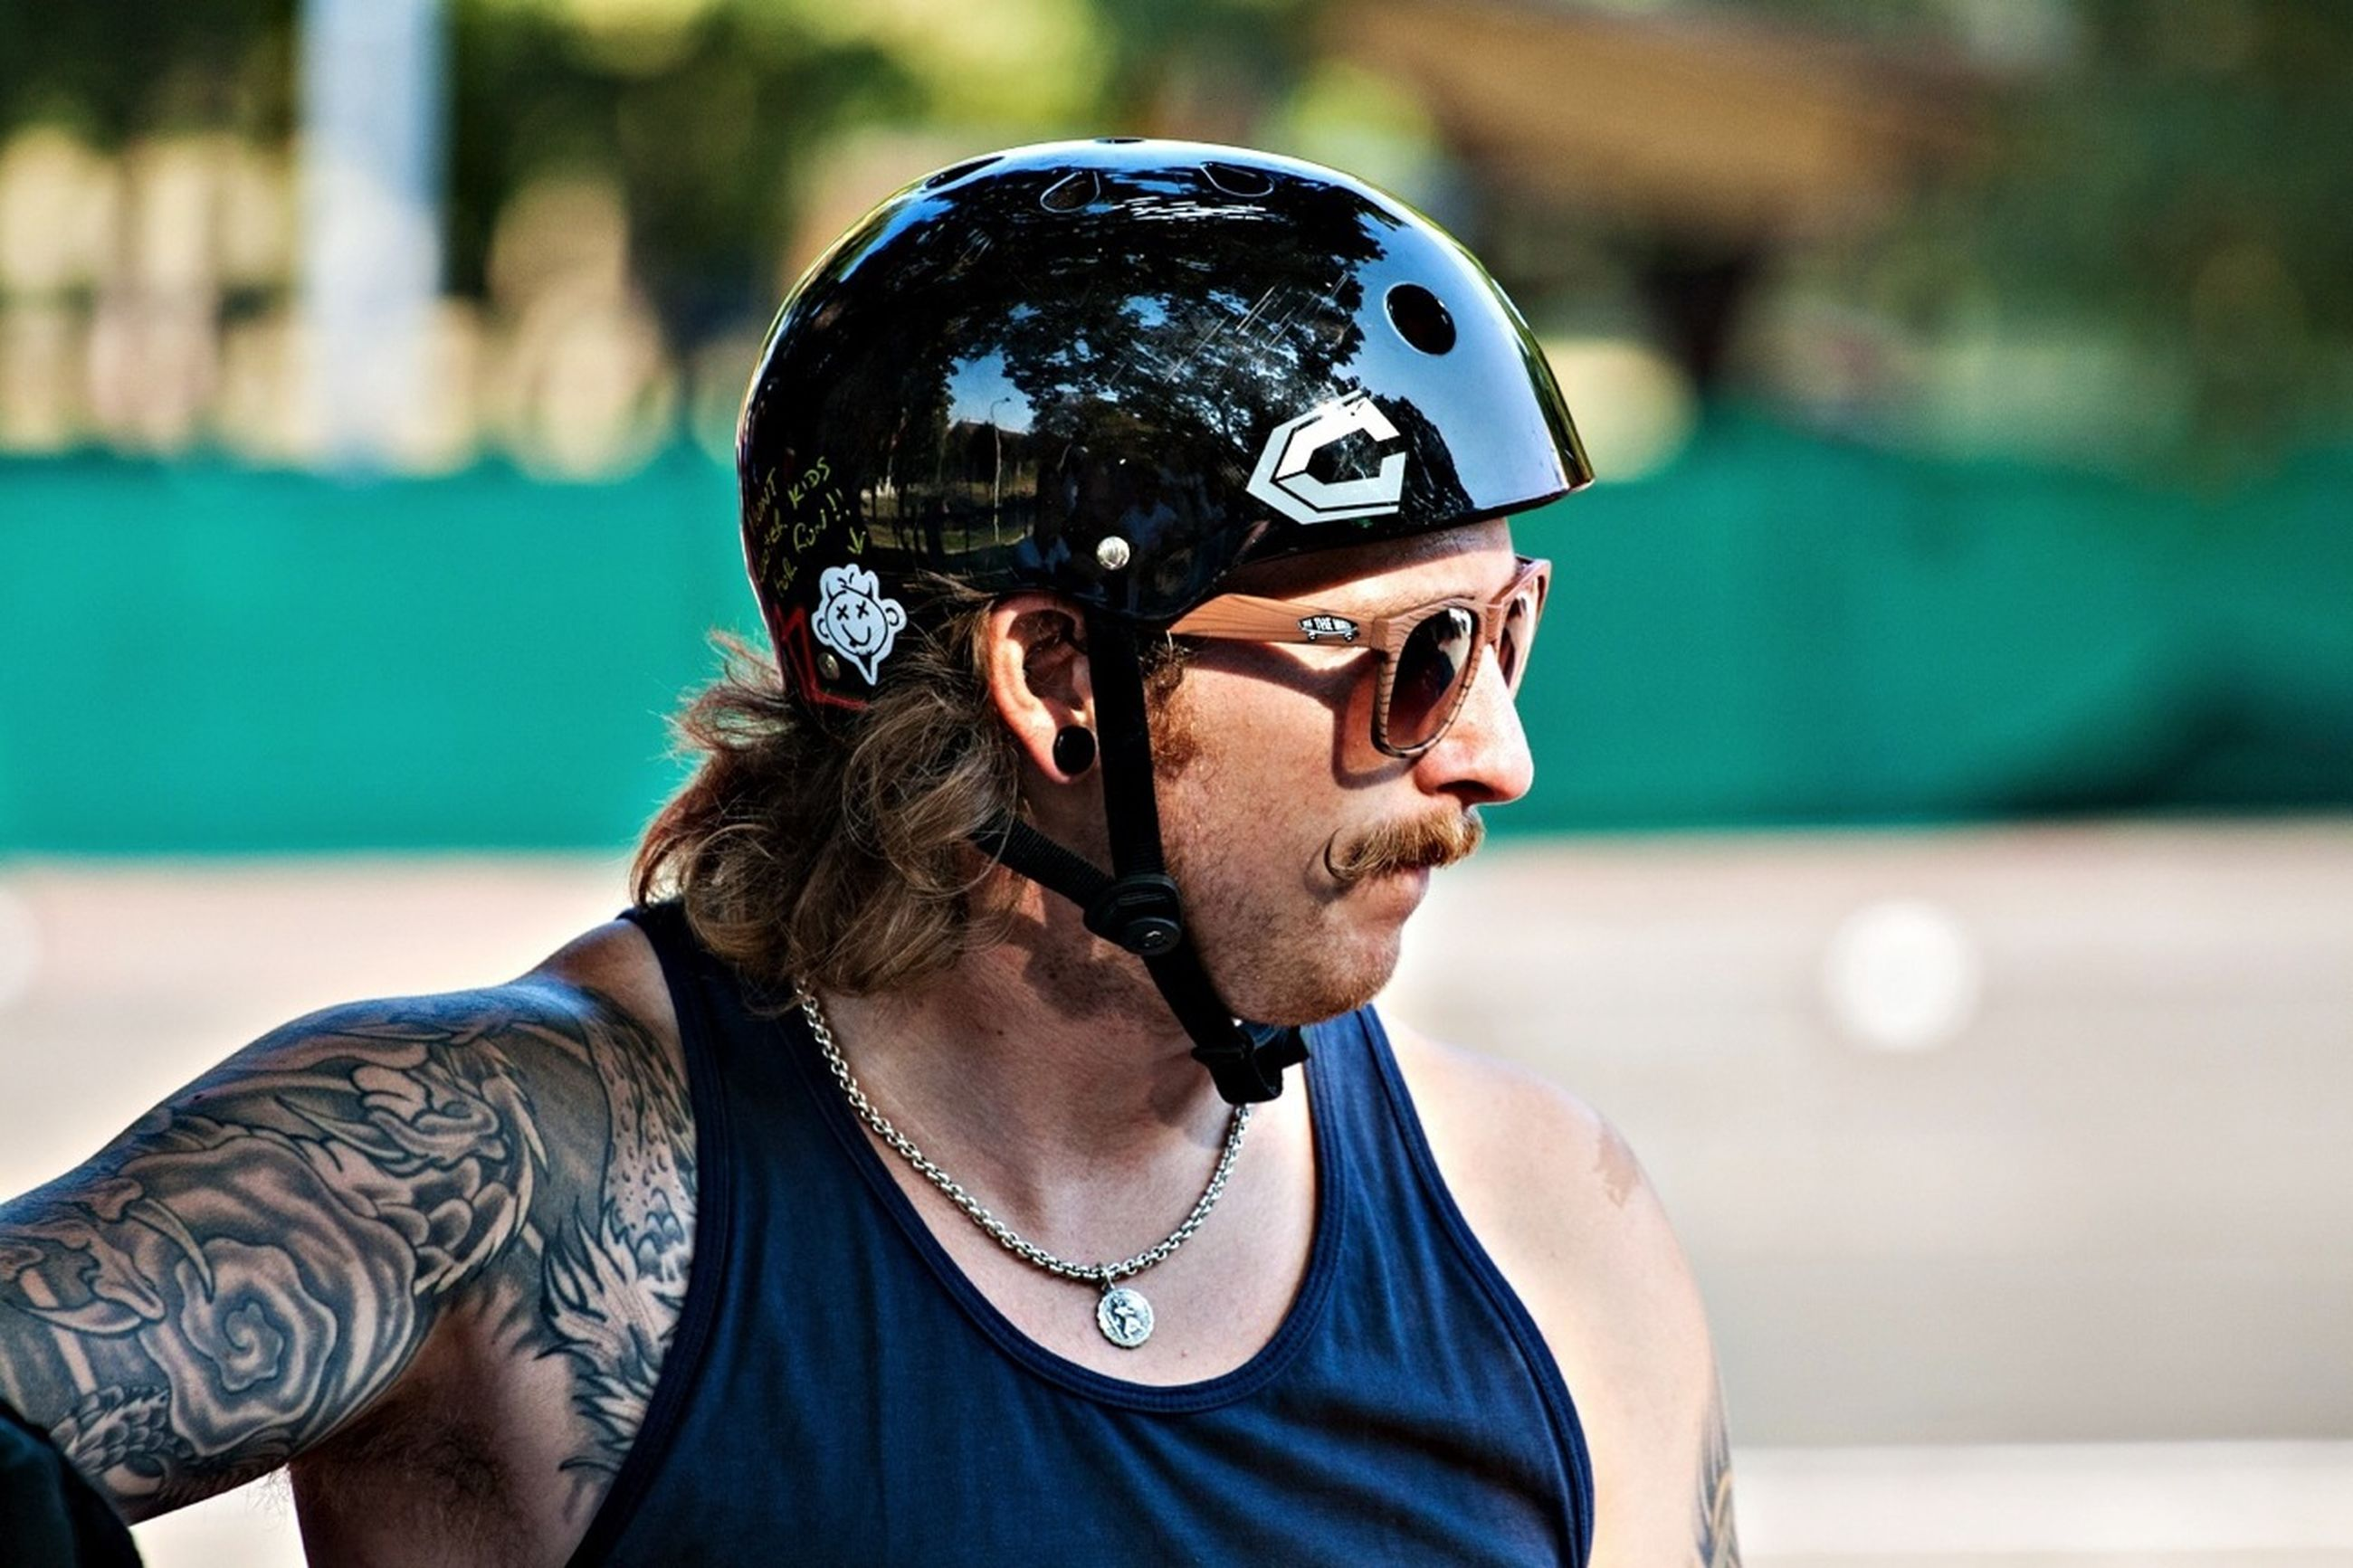 focus on foreground, lifestyles, headshot, leisure activity, young men, sunglasses, close-up, young adult, portrait, front view, looking at camera, person, mid adult men, beard, head and shoulders, holding, men, cap